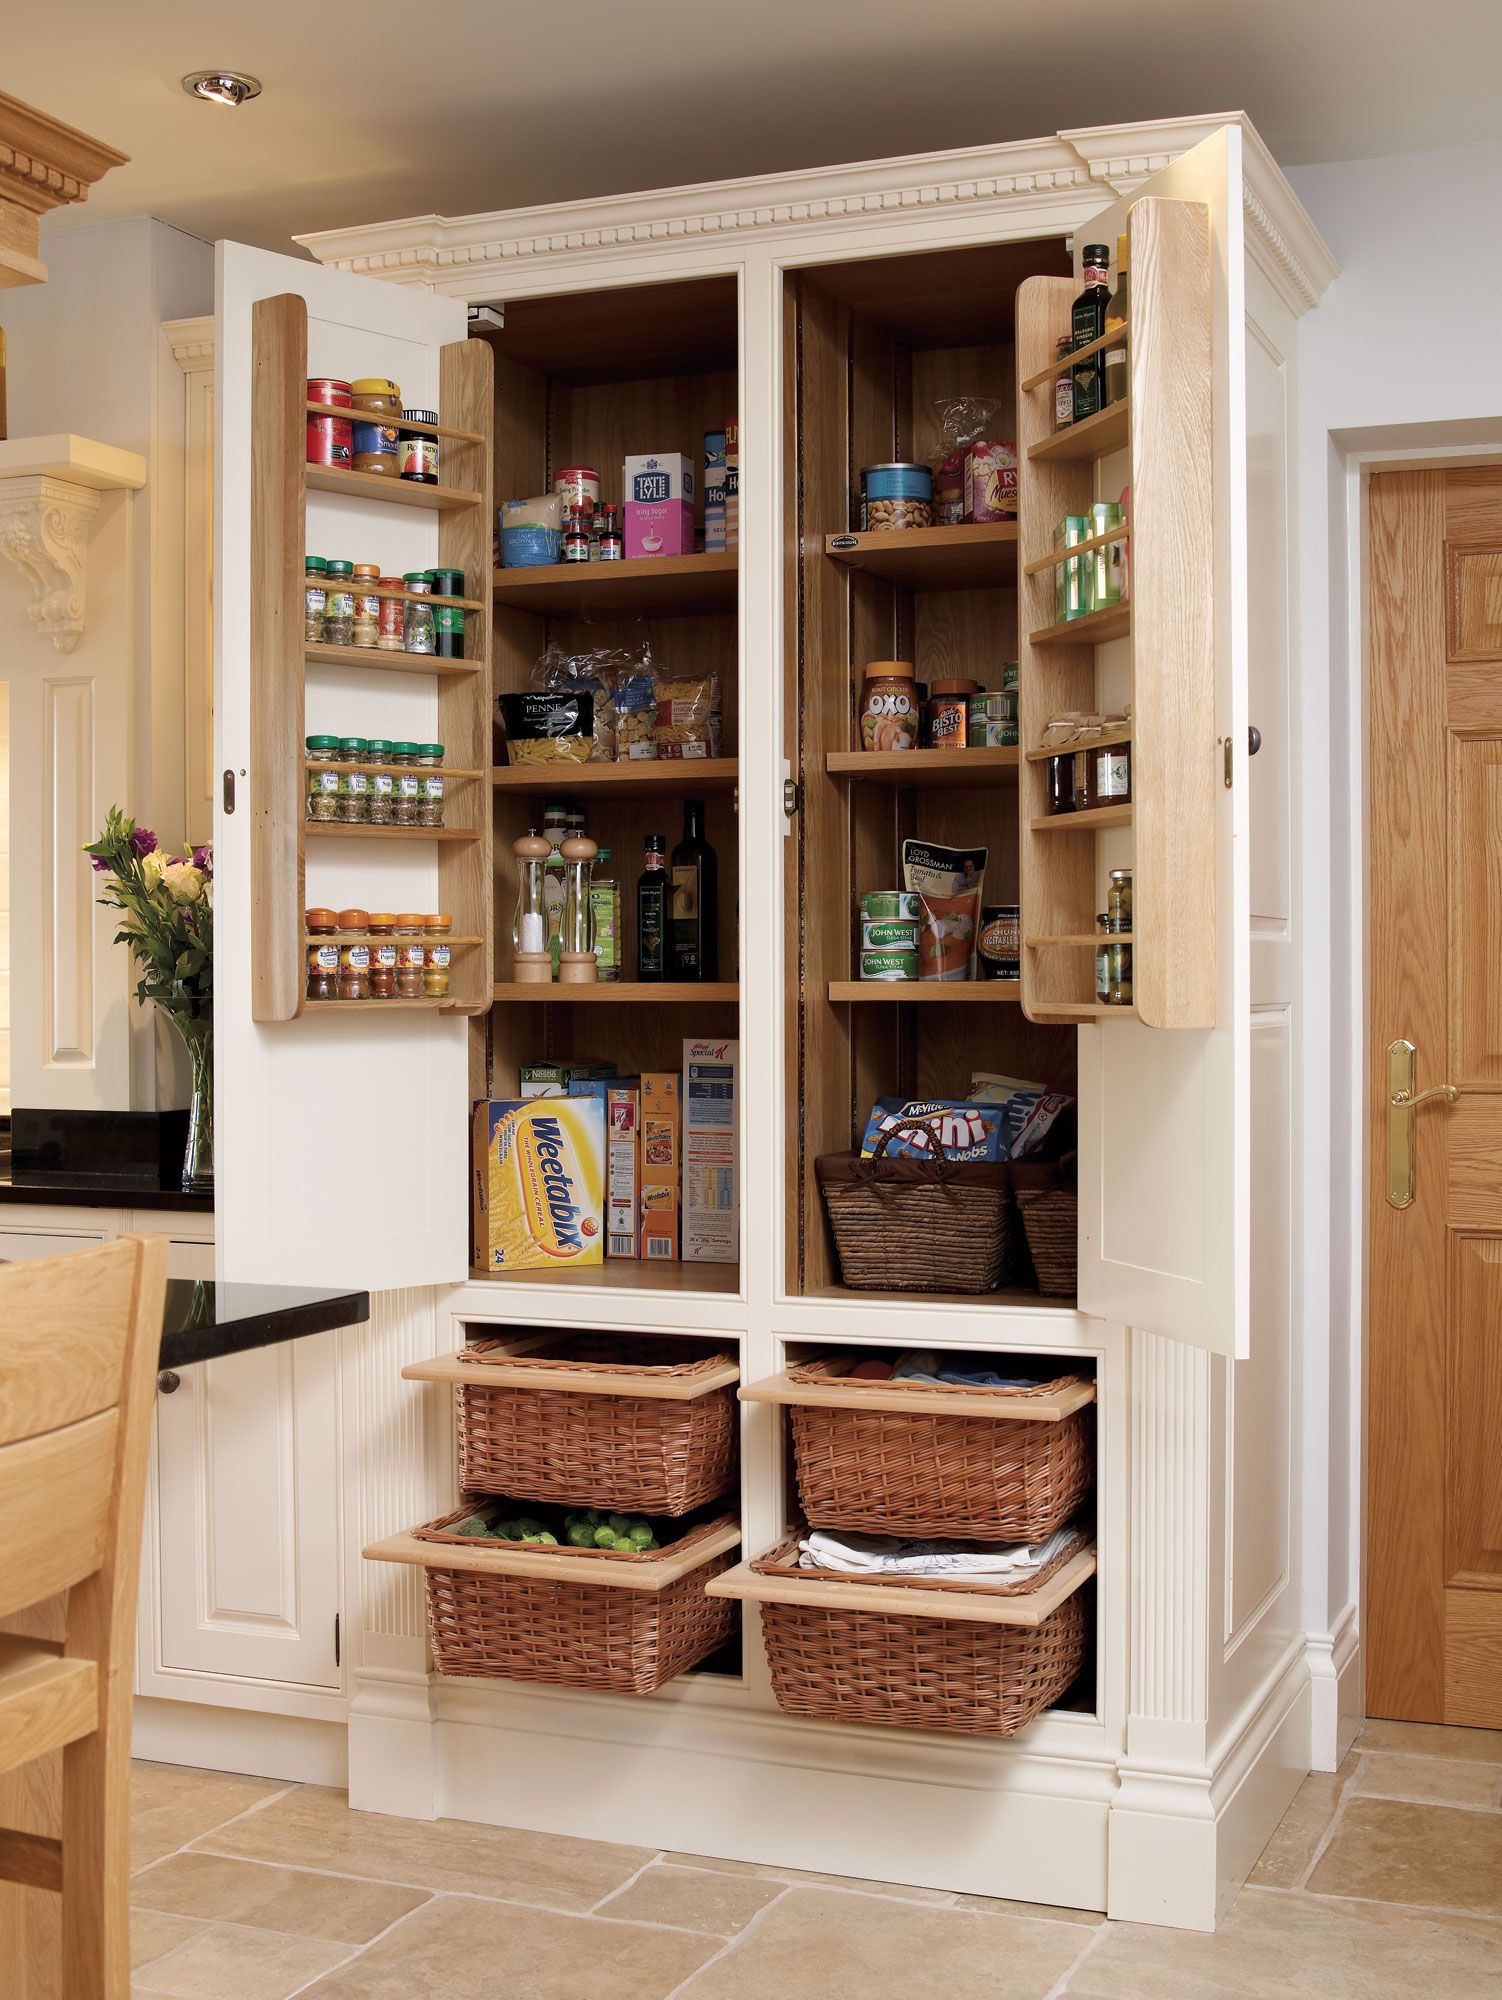 kitchen armoire tuscan curtains valances exactly what i want to do our armoir potato storage in the bottom baskets and lots of can space love spices on door